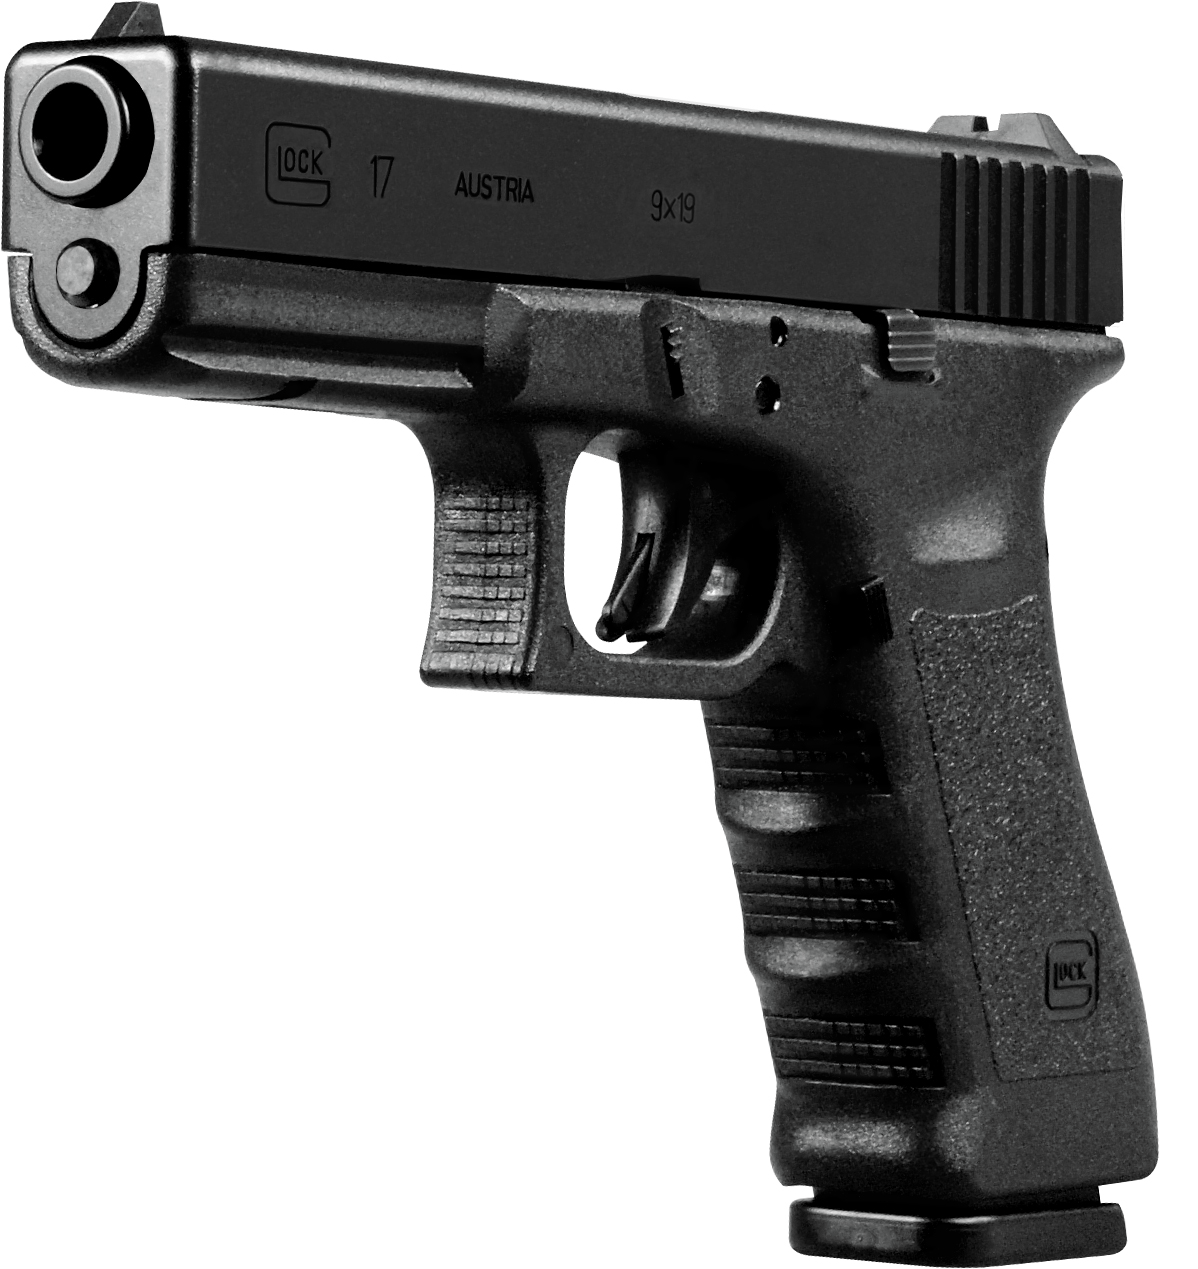 Glock 17 Generation 3 - 9 mm Luger